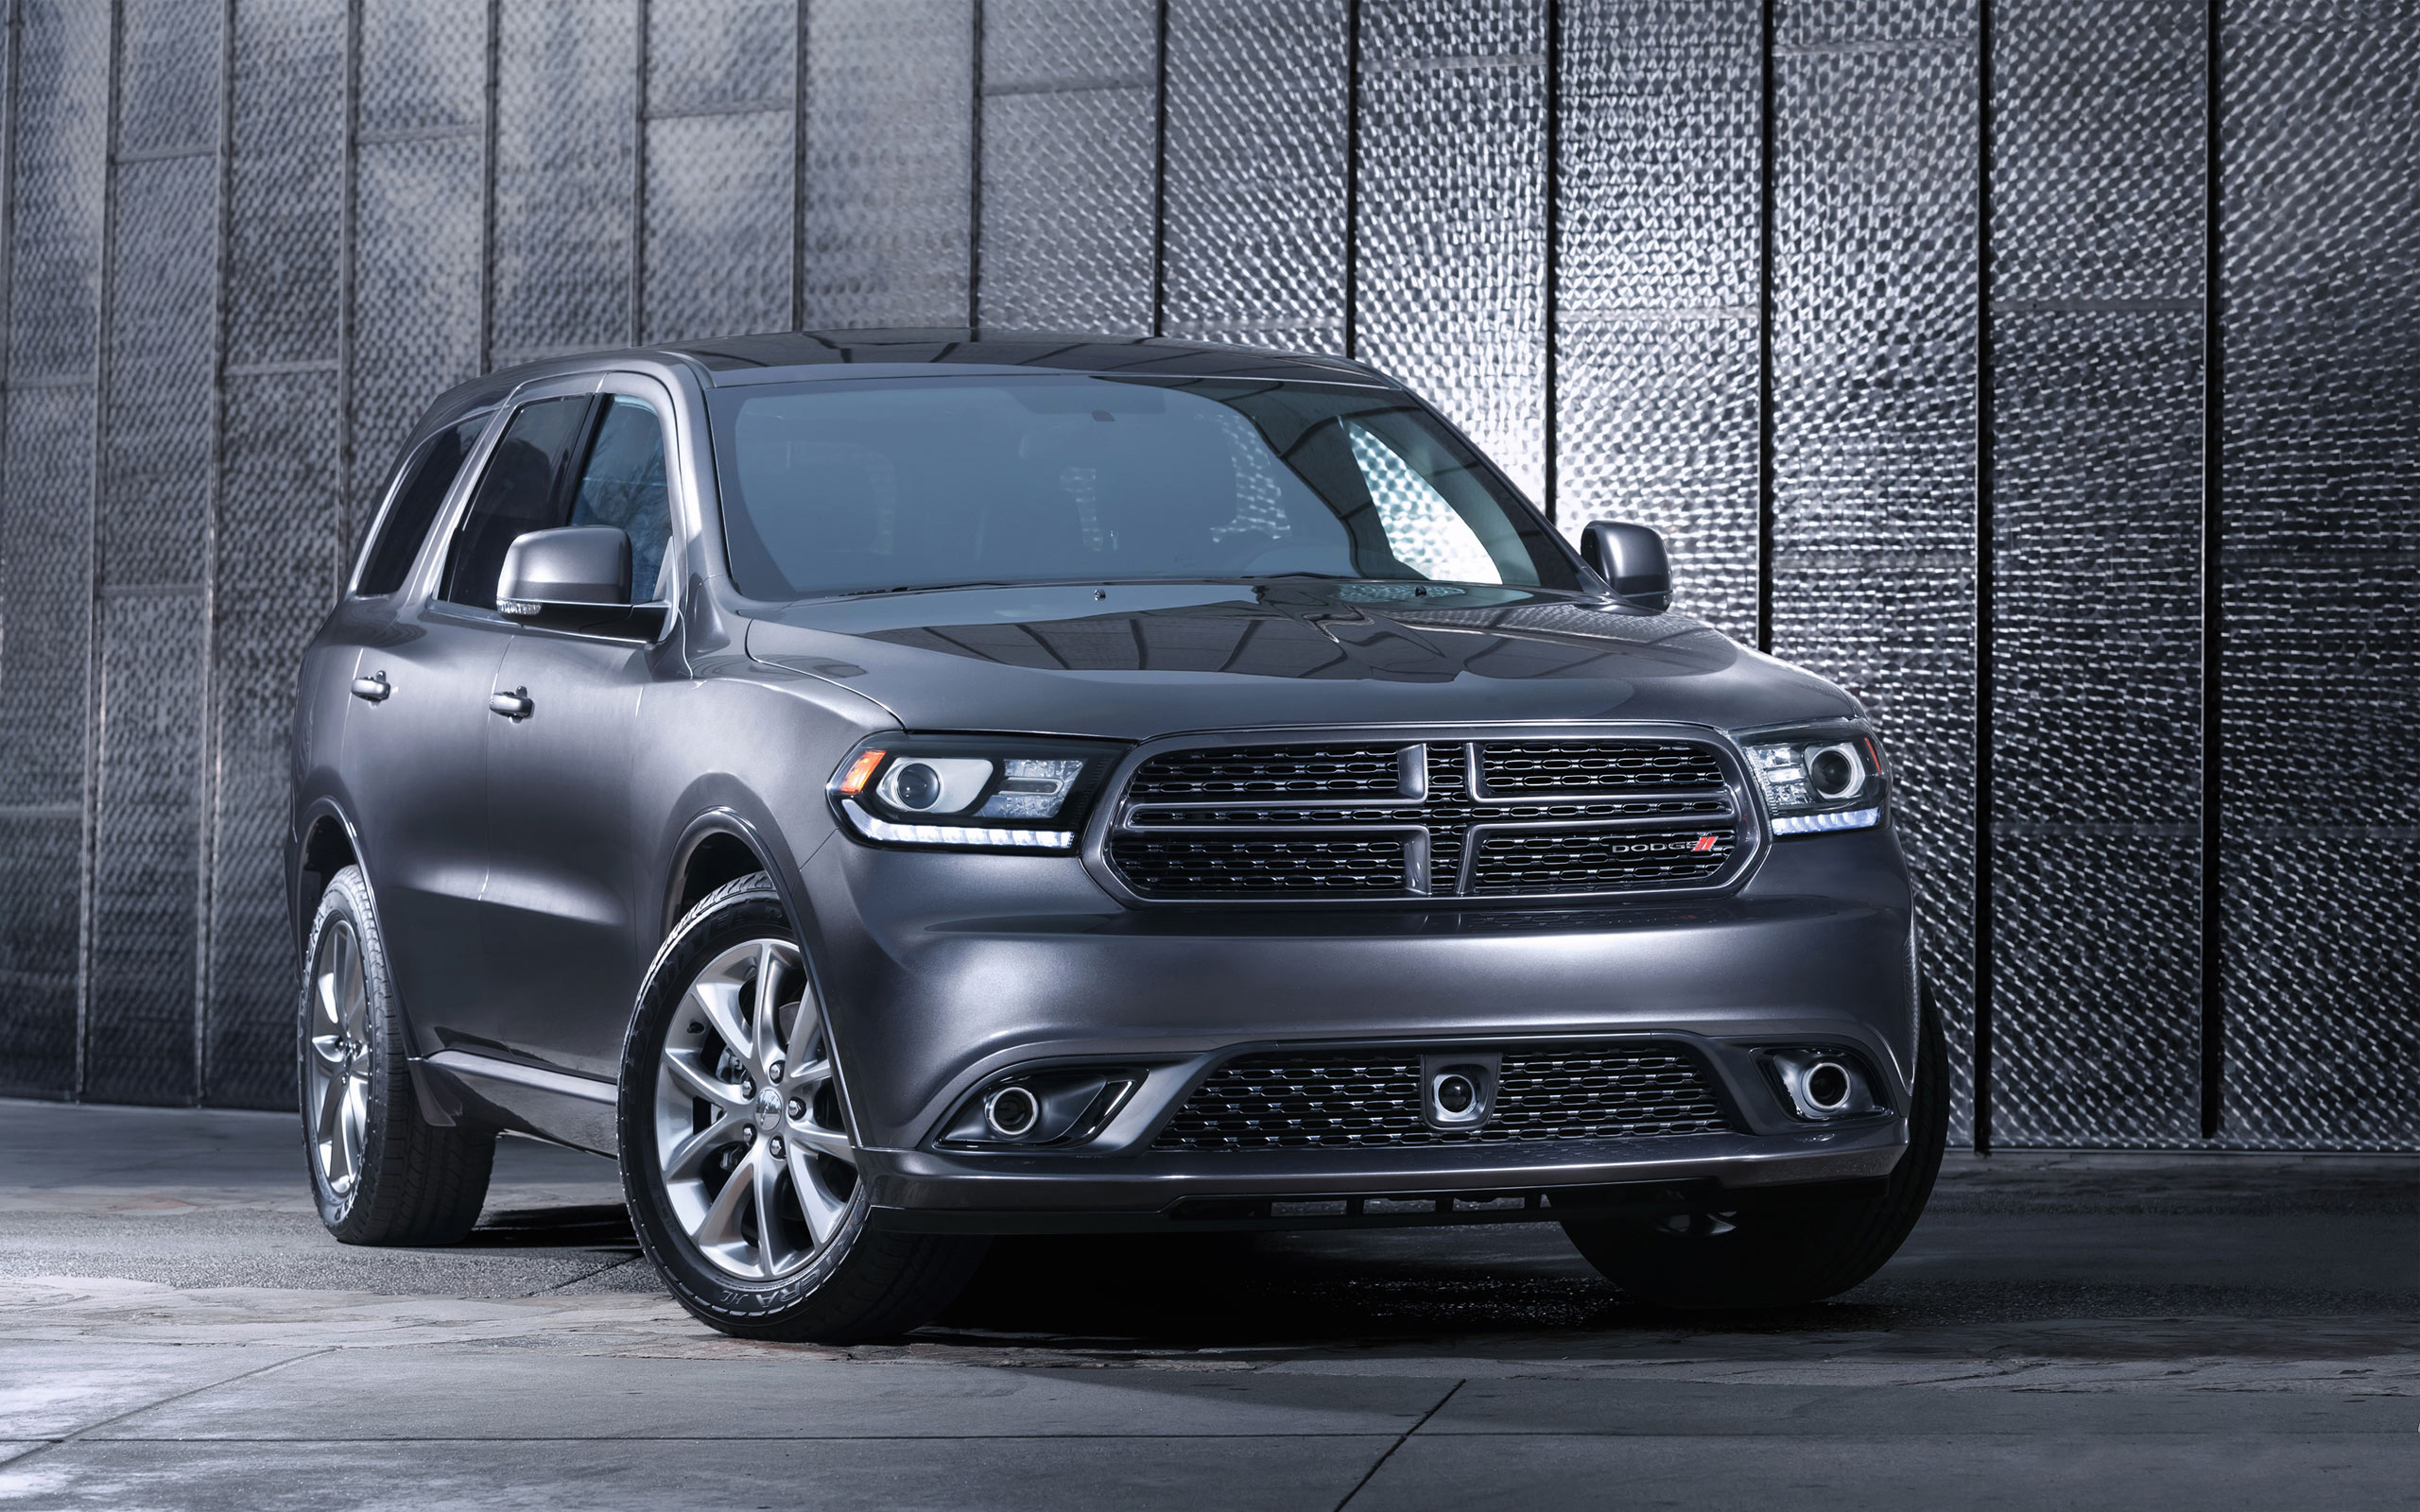 2014 Dodge Durango Wallpaper | HD Car Wallpapers